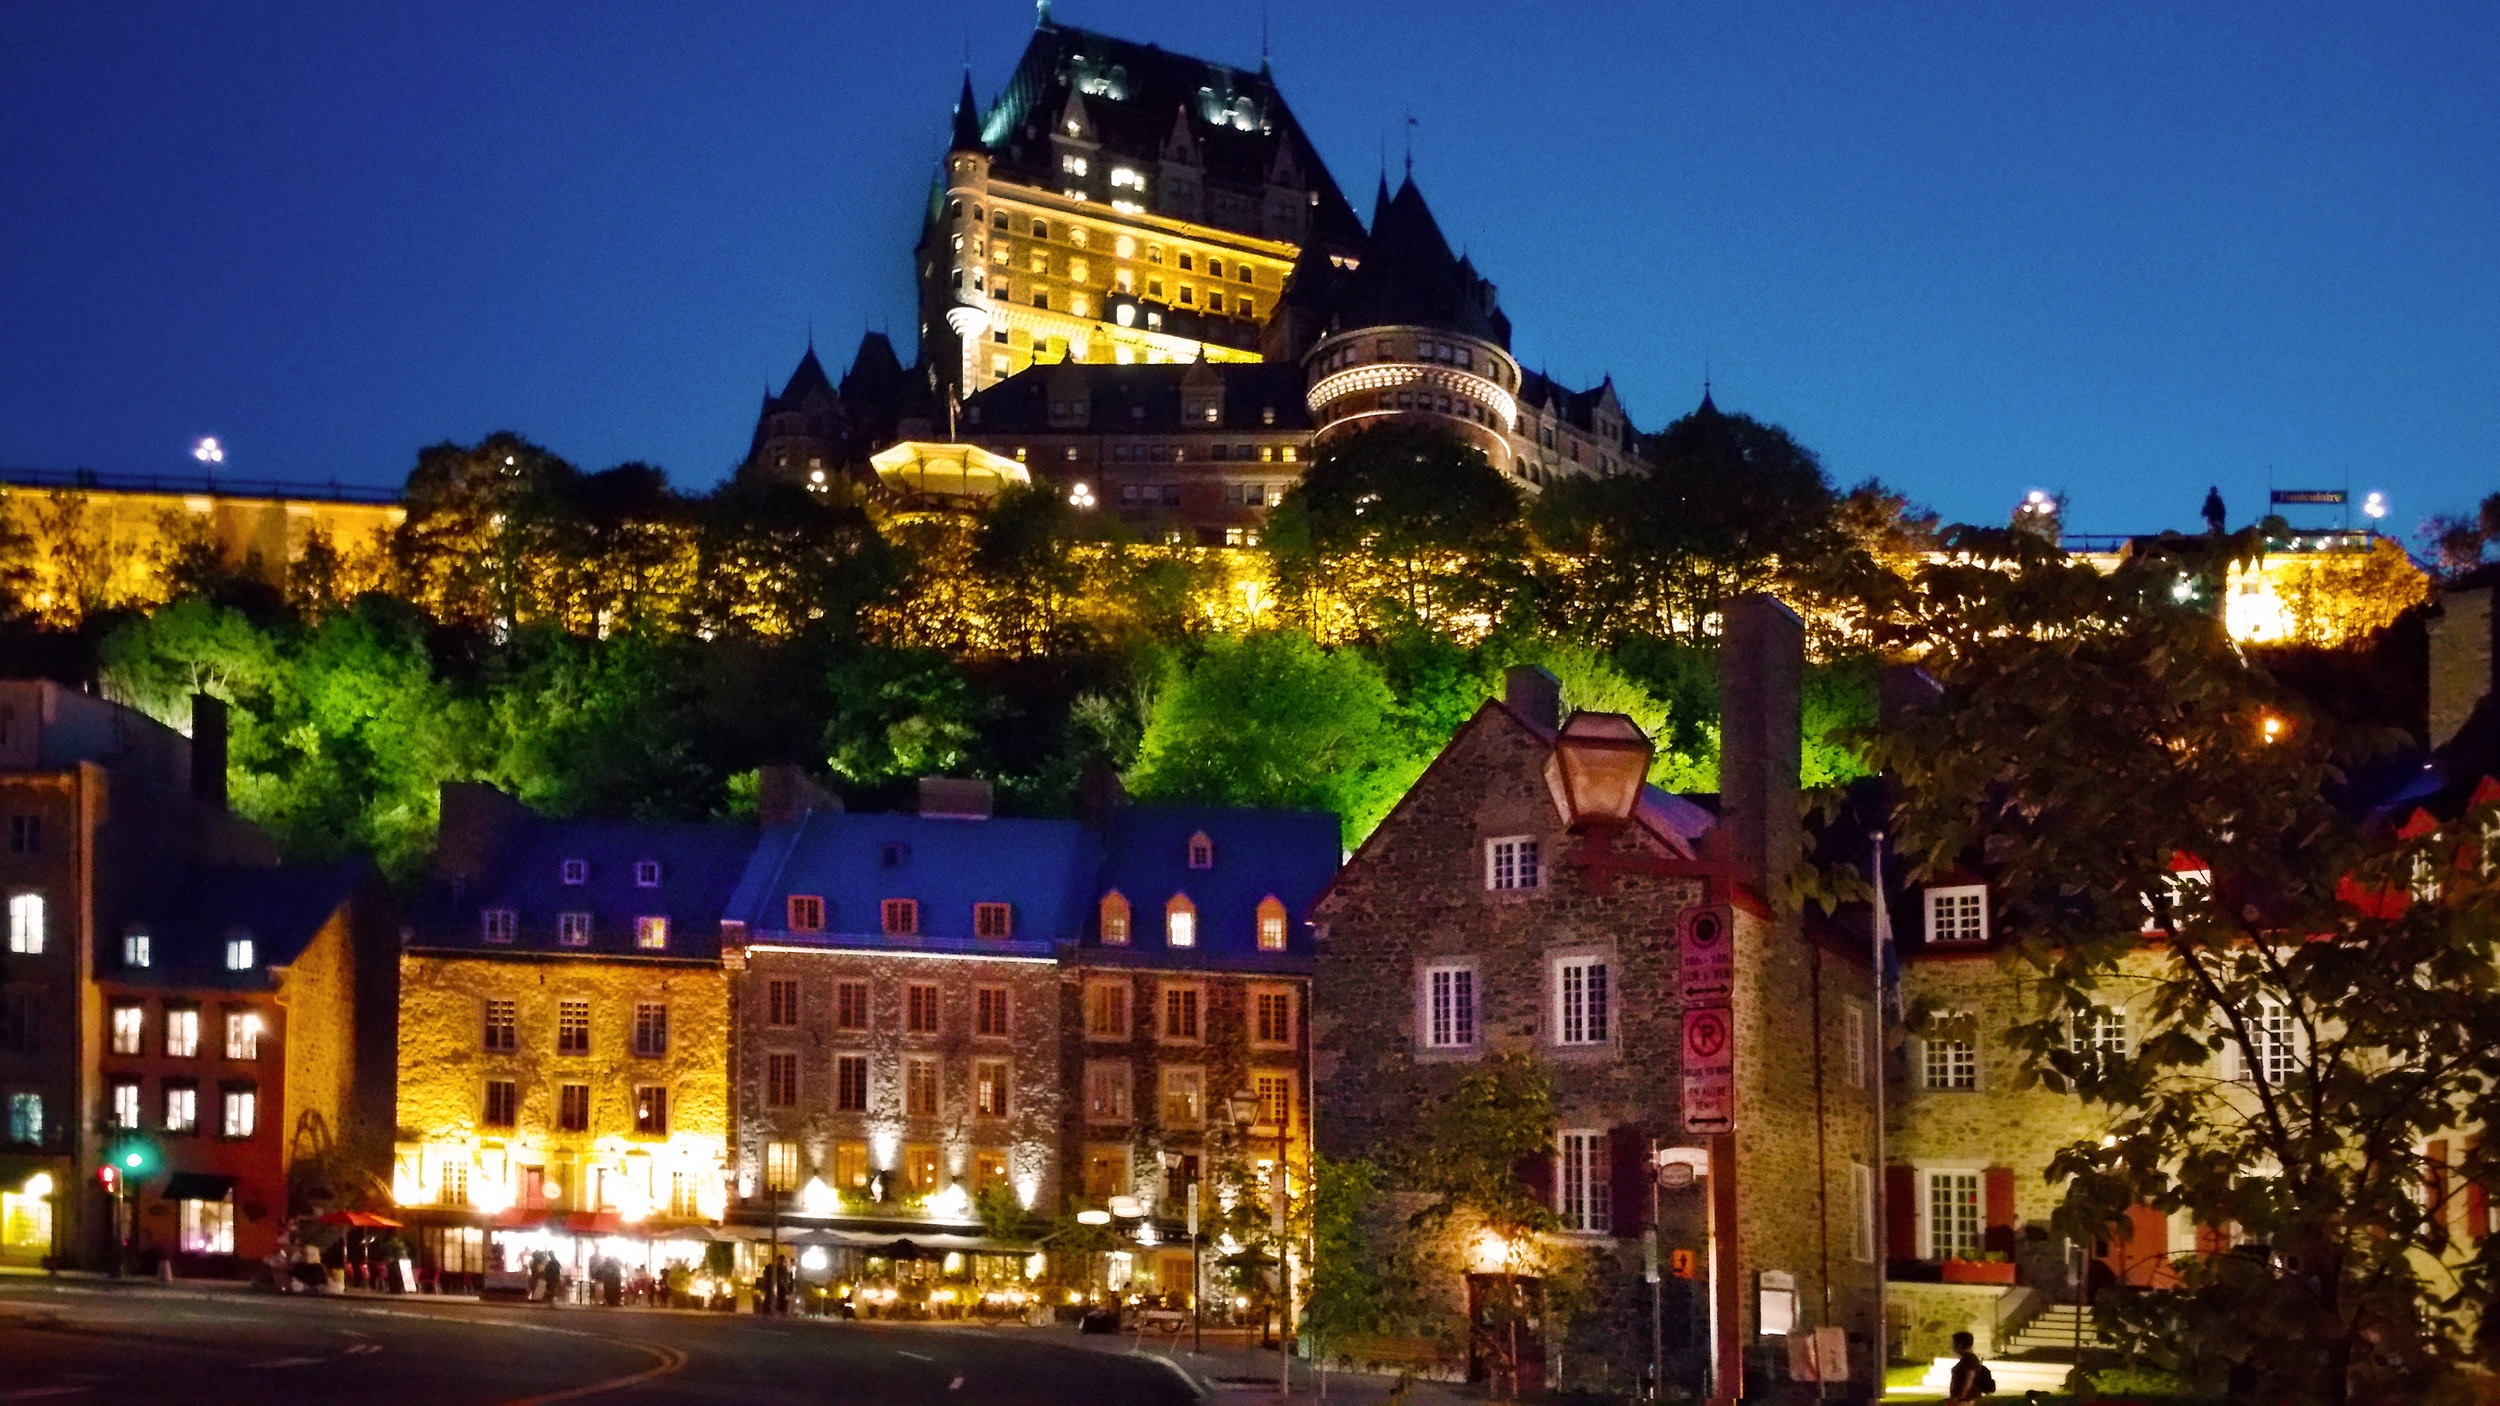 View on the FAIRMONT LE CHÂTEAU FRONTENAC from Lower Old Town, Quebec © Joanne DiBona Photography